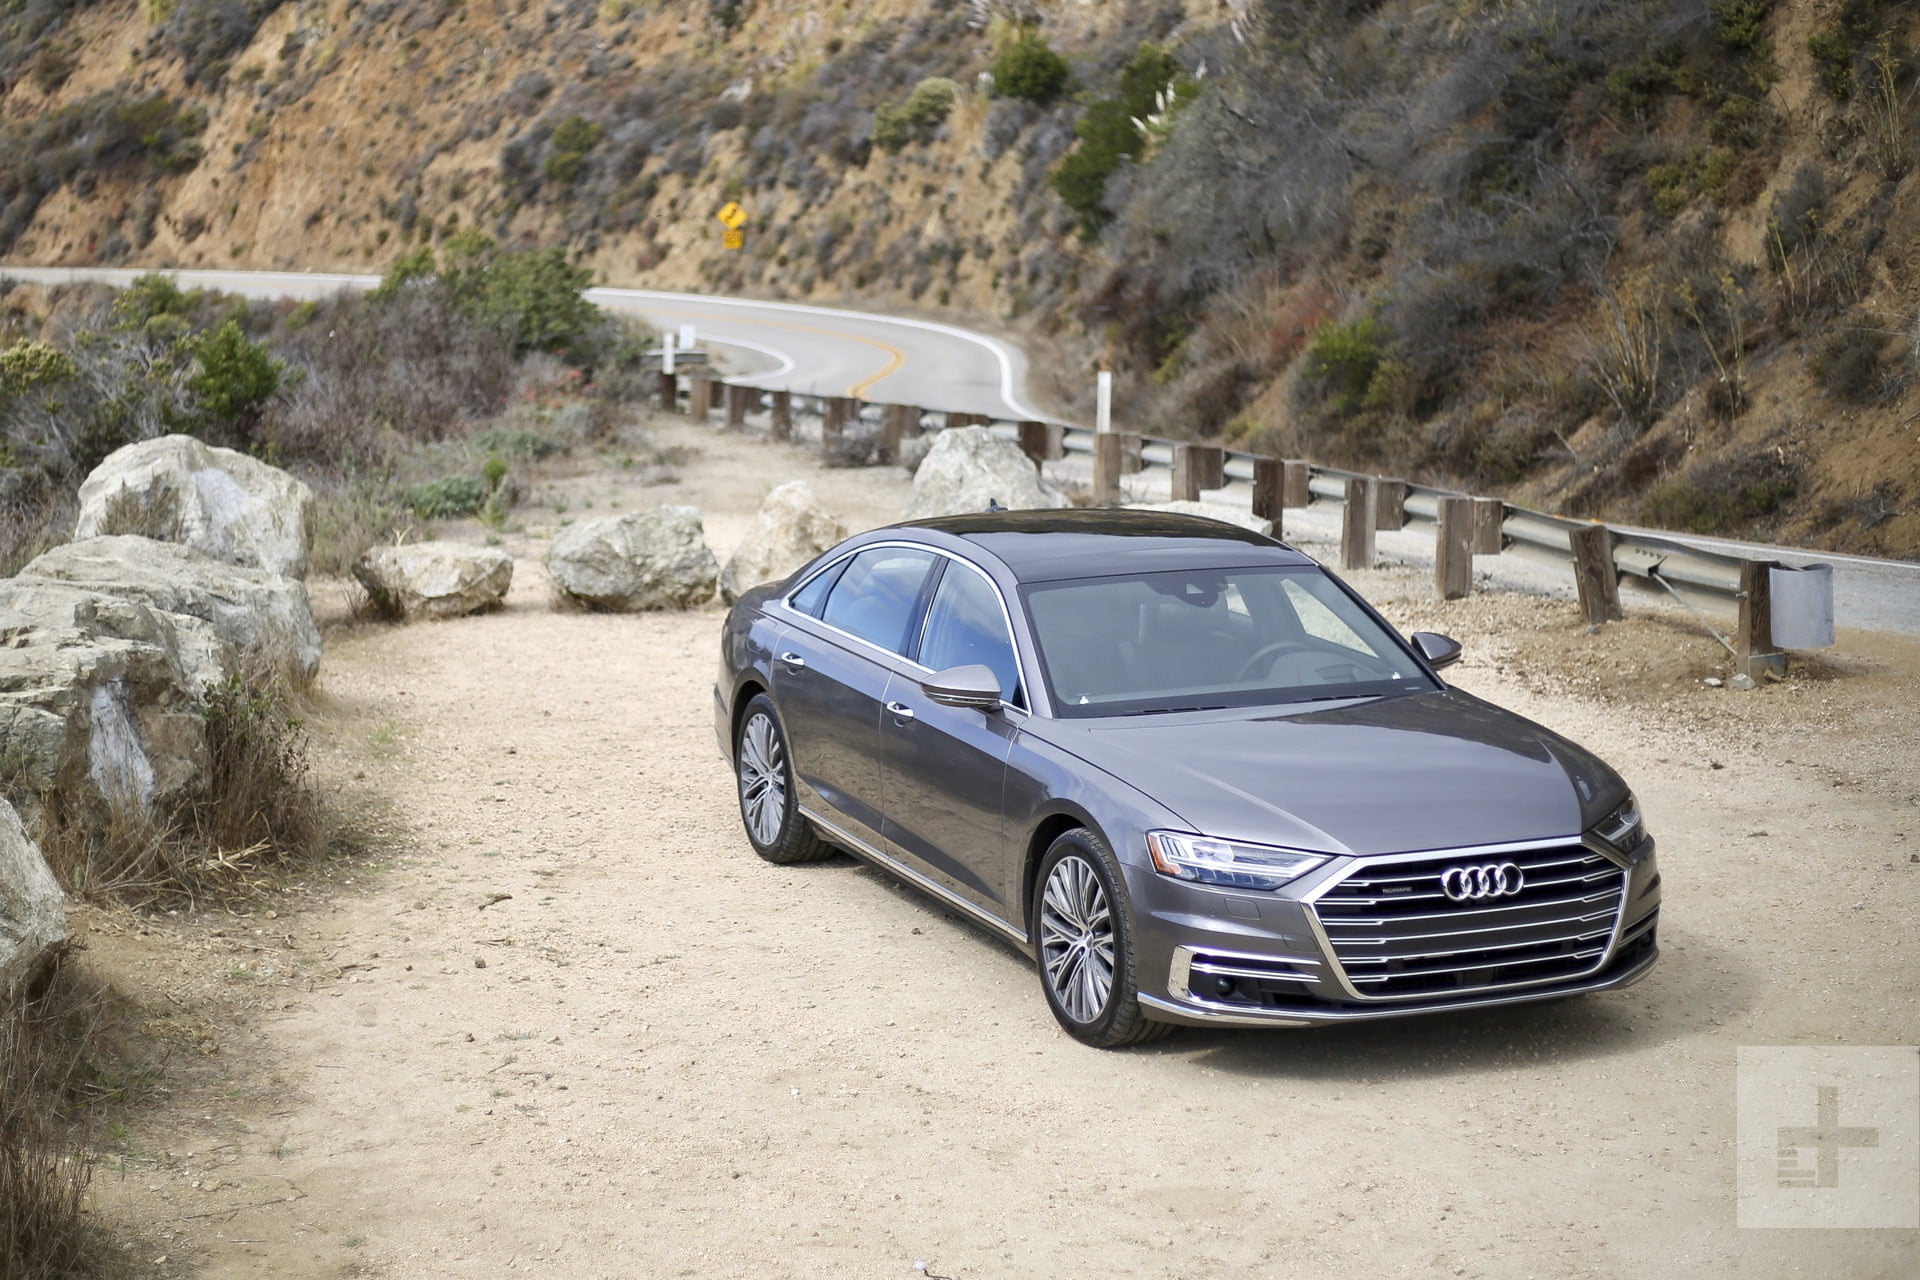 2019 Audi A8 First Drive Review | Digital Trends